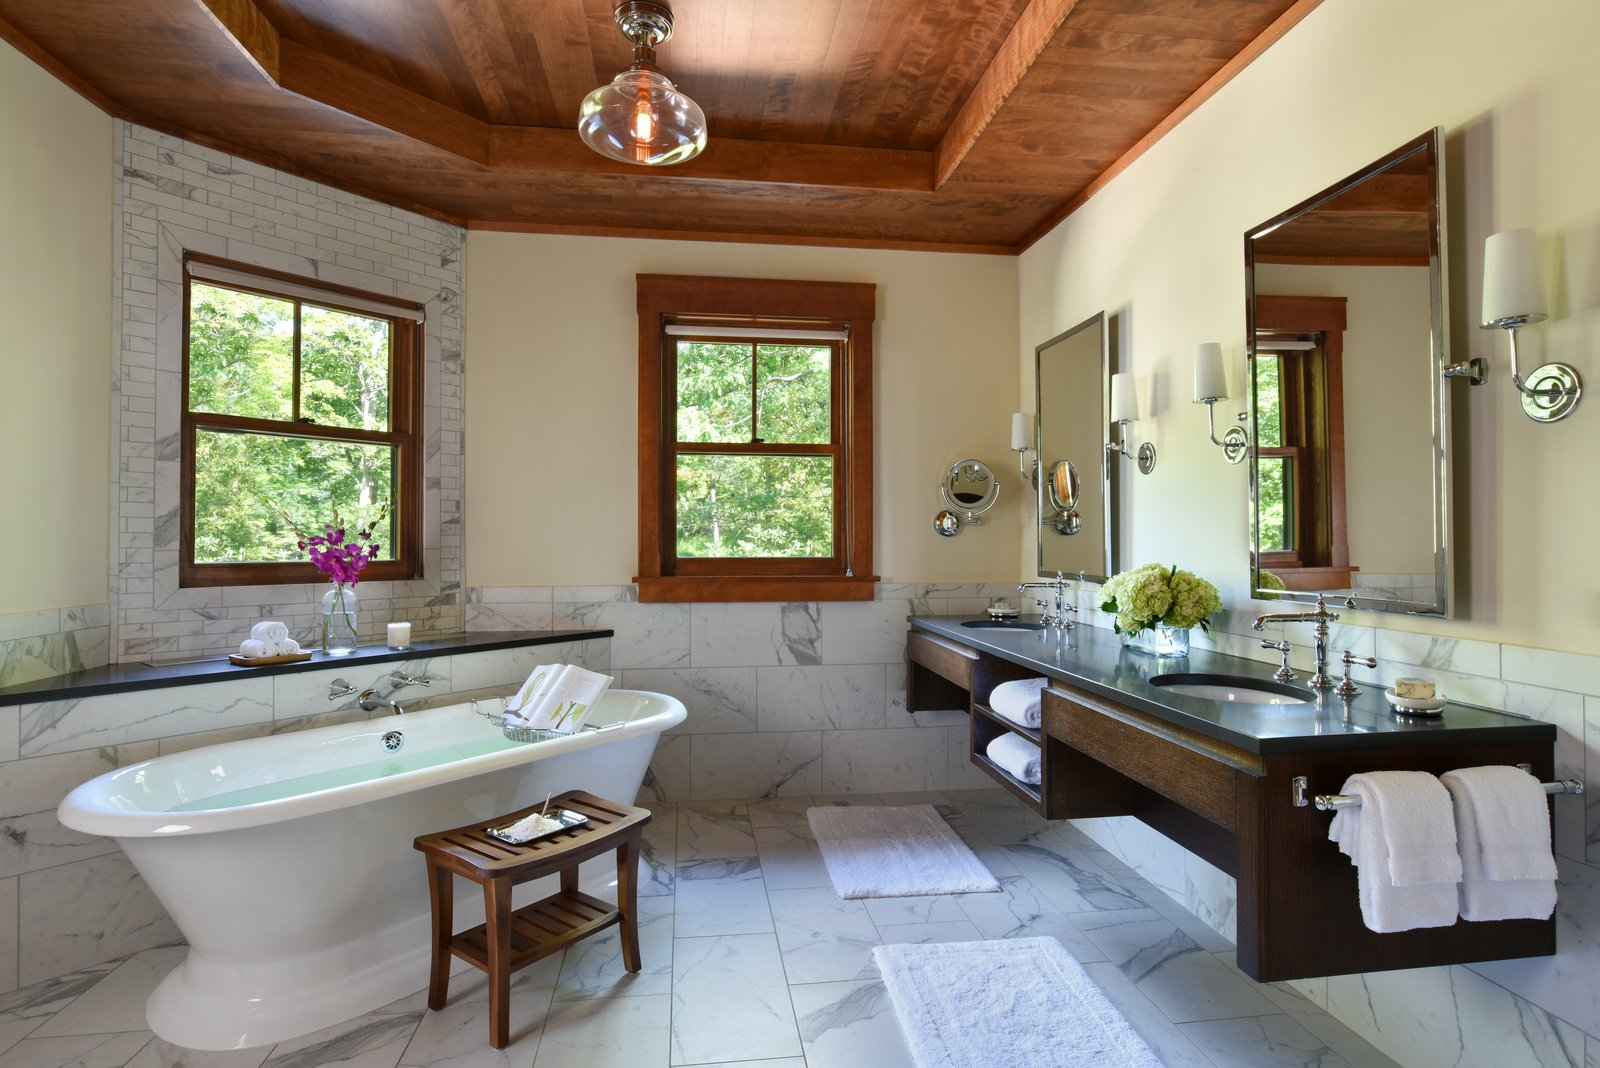 The 7,000-square-foot two-story Grove Lodge incorporates the use of native stone and natural finishes to help it blend into the scenic landscape of the Mohonk Mountain House property.  Interior spaces include hardwood floors and the use of exposed wood throughout. The guest rooms have their own separate drive-up entrances and feature either a stone patio (lower level) or balcony area. All areas are appointed with our rustic rocking chairs for outdoor seating.  Eco-friendly features include sustainable building materials, LED lighting, and a geo- thermal heating and cooling system. 250-tons of Shawangunk conglomerate excavated from the site have been recycled into the retaining walls and the stone fireplace.  Grove Lodge at Mohonk Mountain House by AJA Architecture and Planning